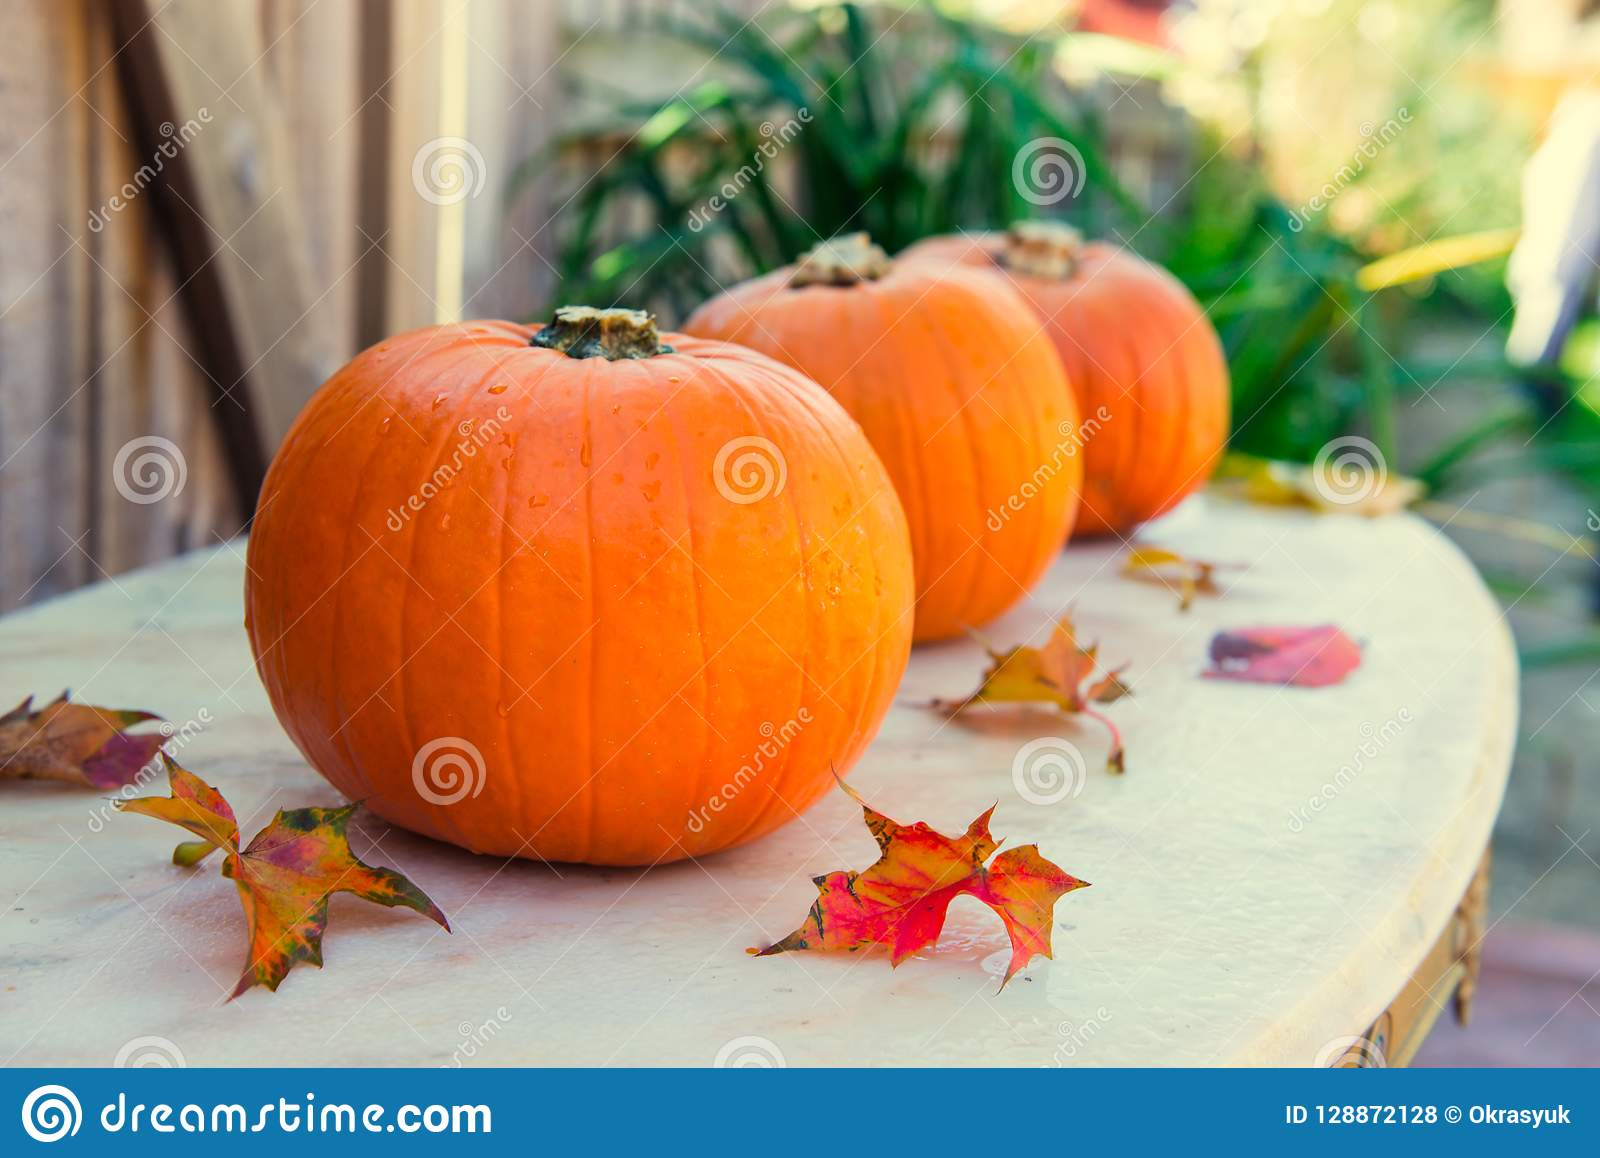 Three pumpkins with fall leaves on stone table with gaarden seasonal background. Autumn harvest, thanksgiving, halloween concept.